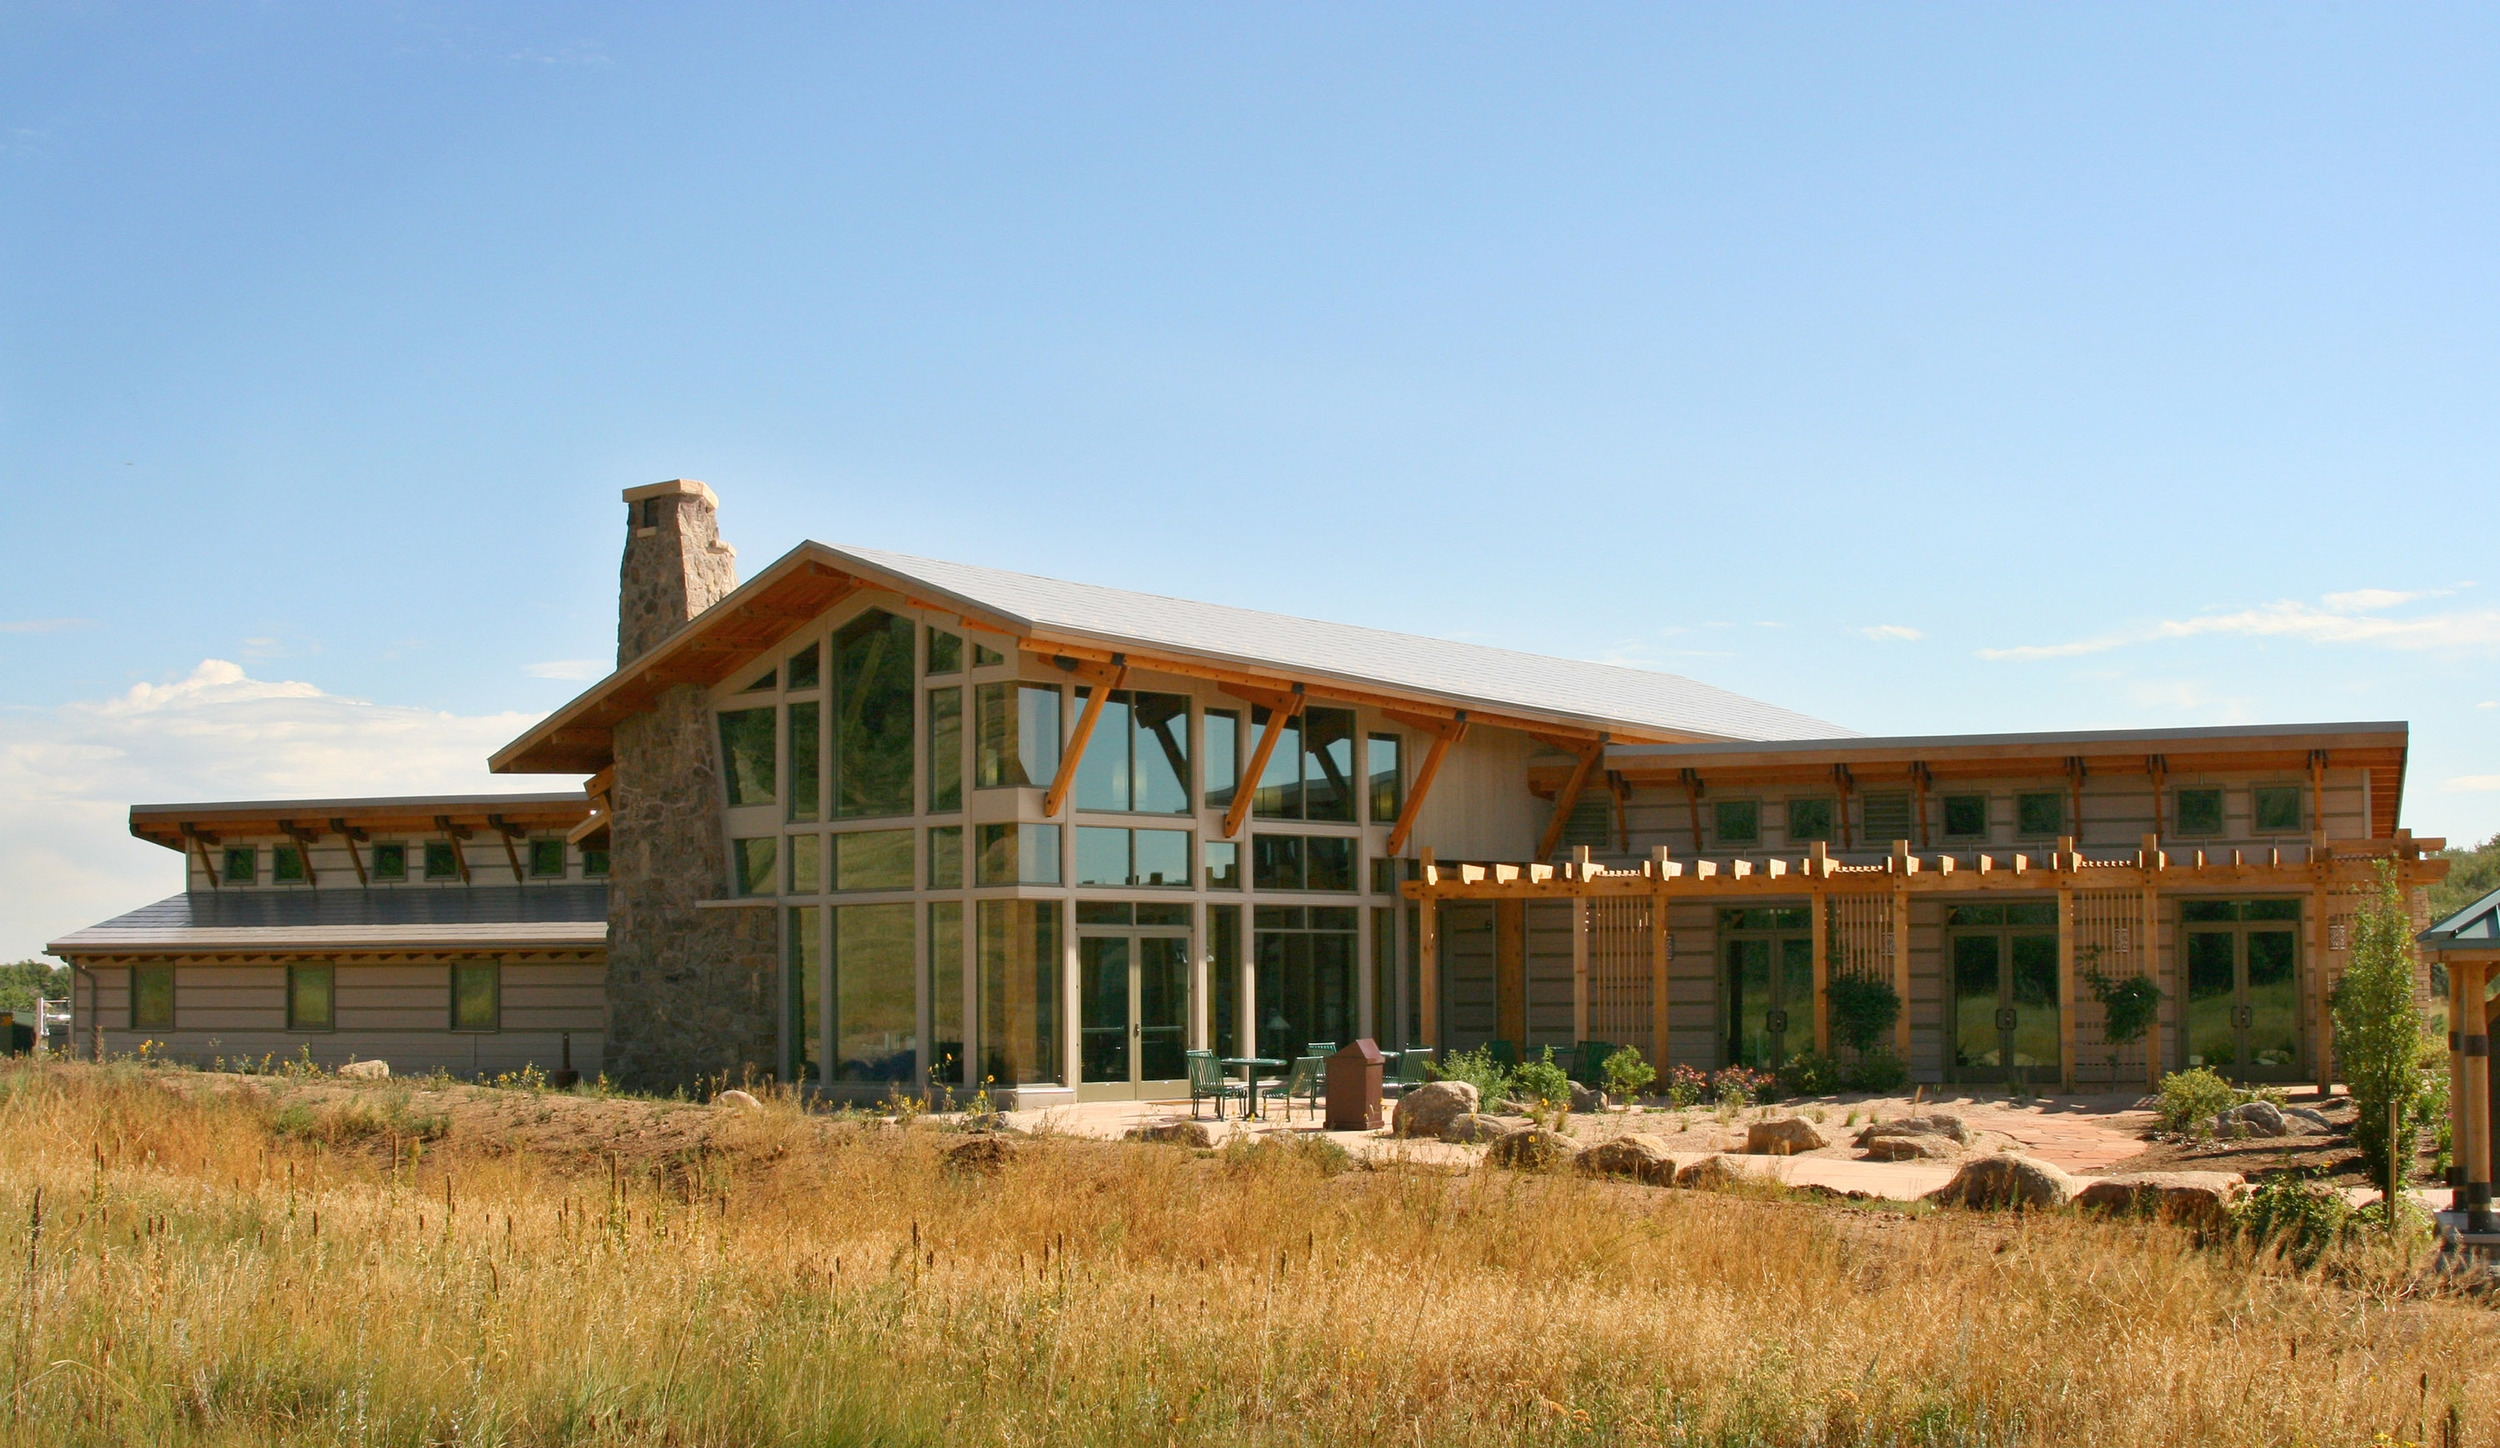 cheyenne_mountain_visitor_center.jpg